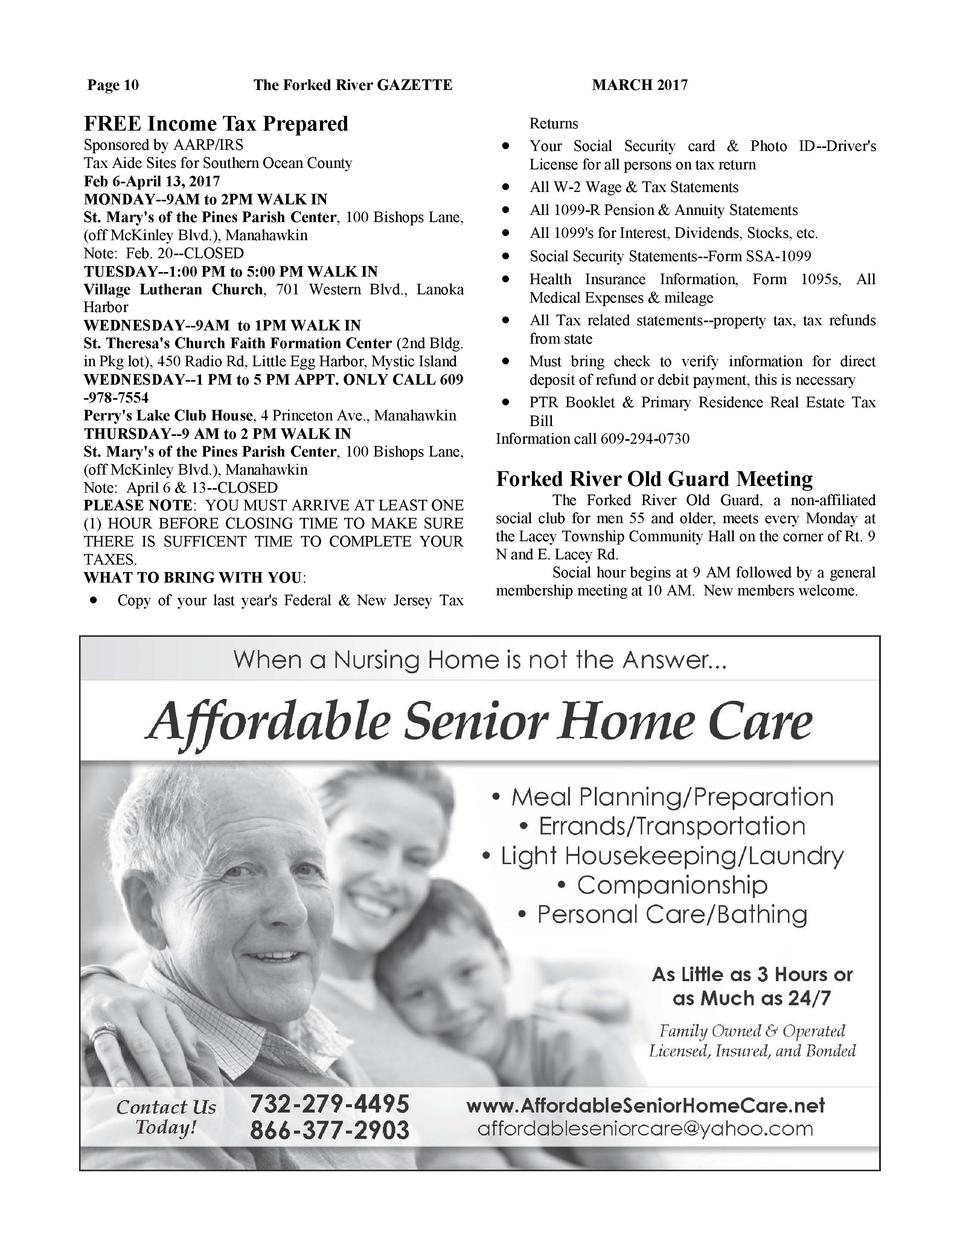 Page 10  The Forked River GAZETTE  FREE Income Tax Prepared Sponsored by AARP IRS Tax Aide Sites for Southern Ocean County...